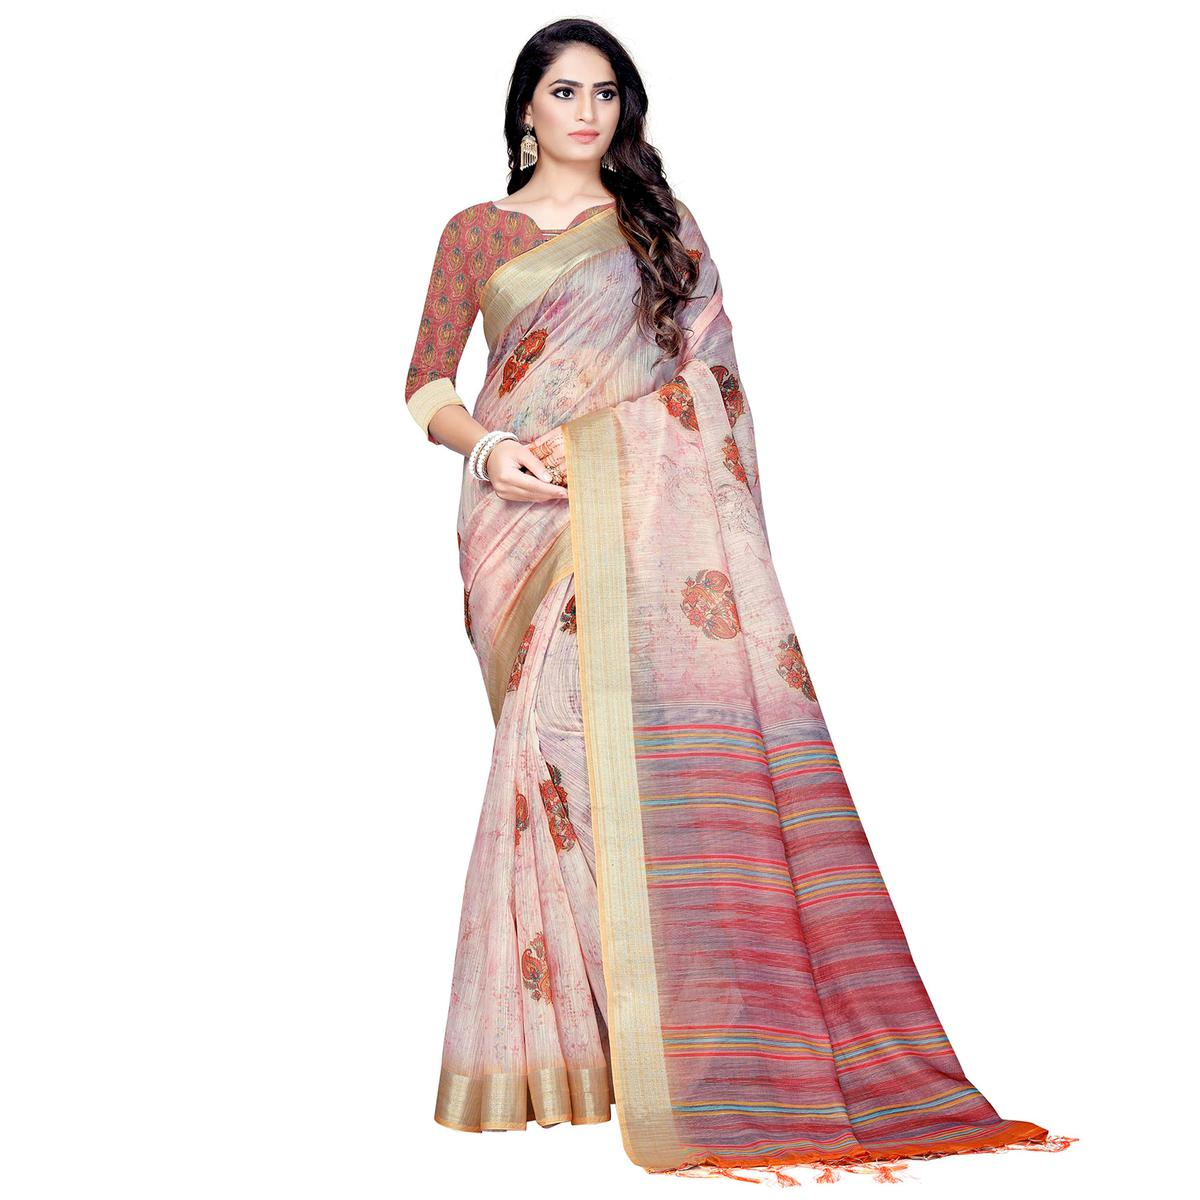 Groovy Peach Colored Casual Digital Printed Linen Saree